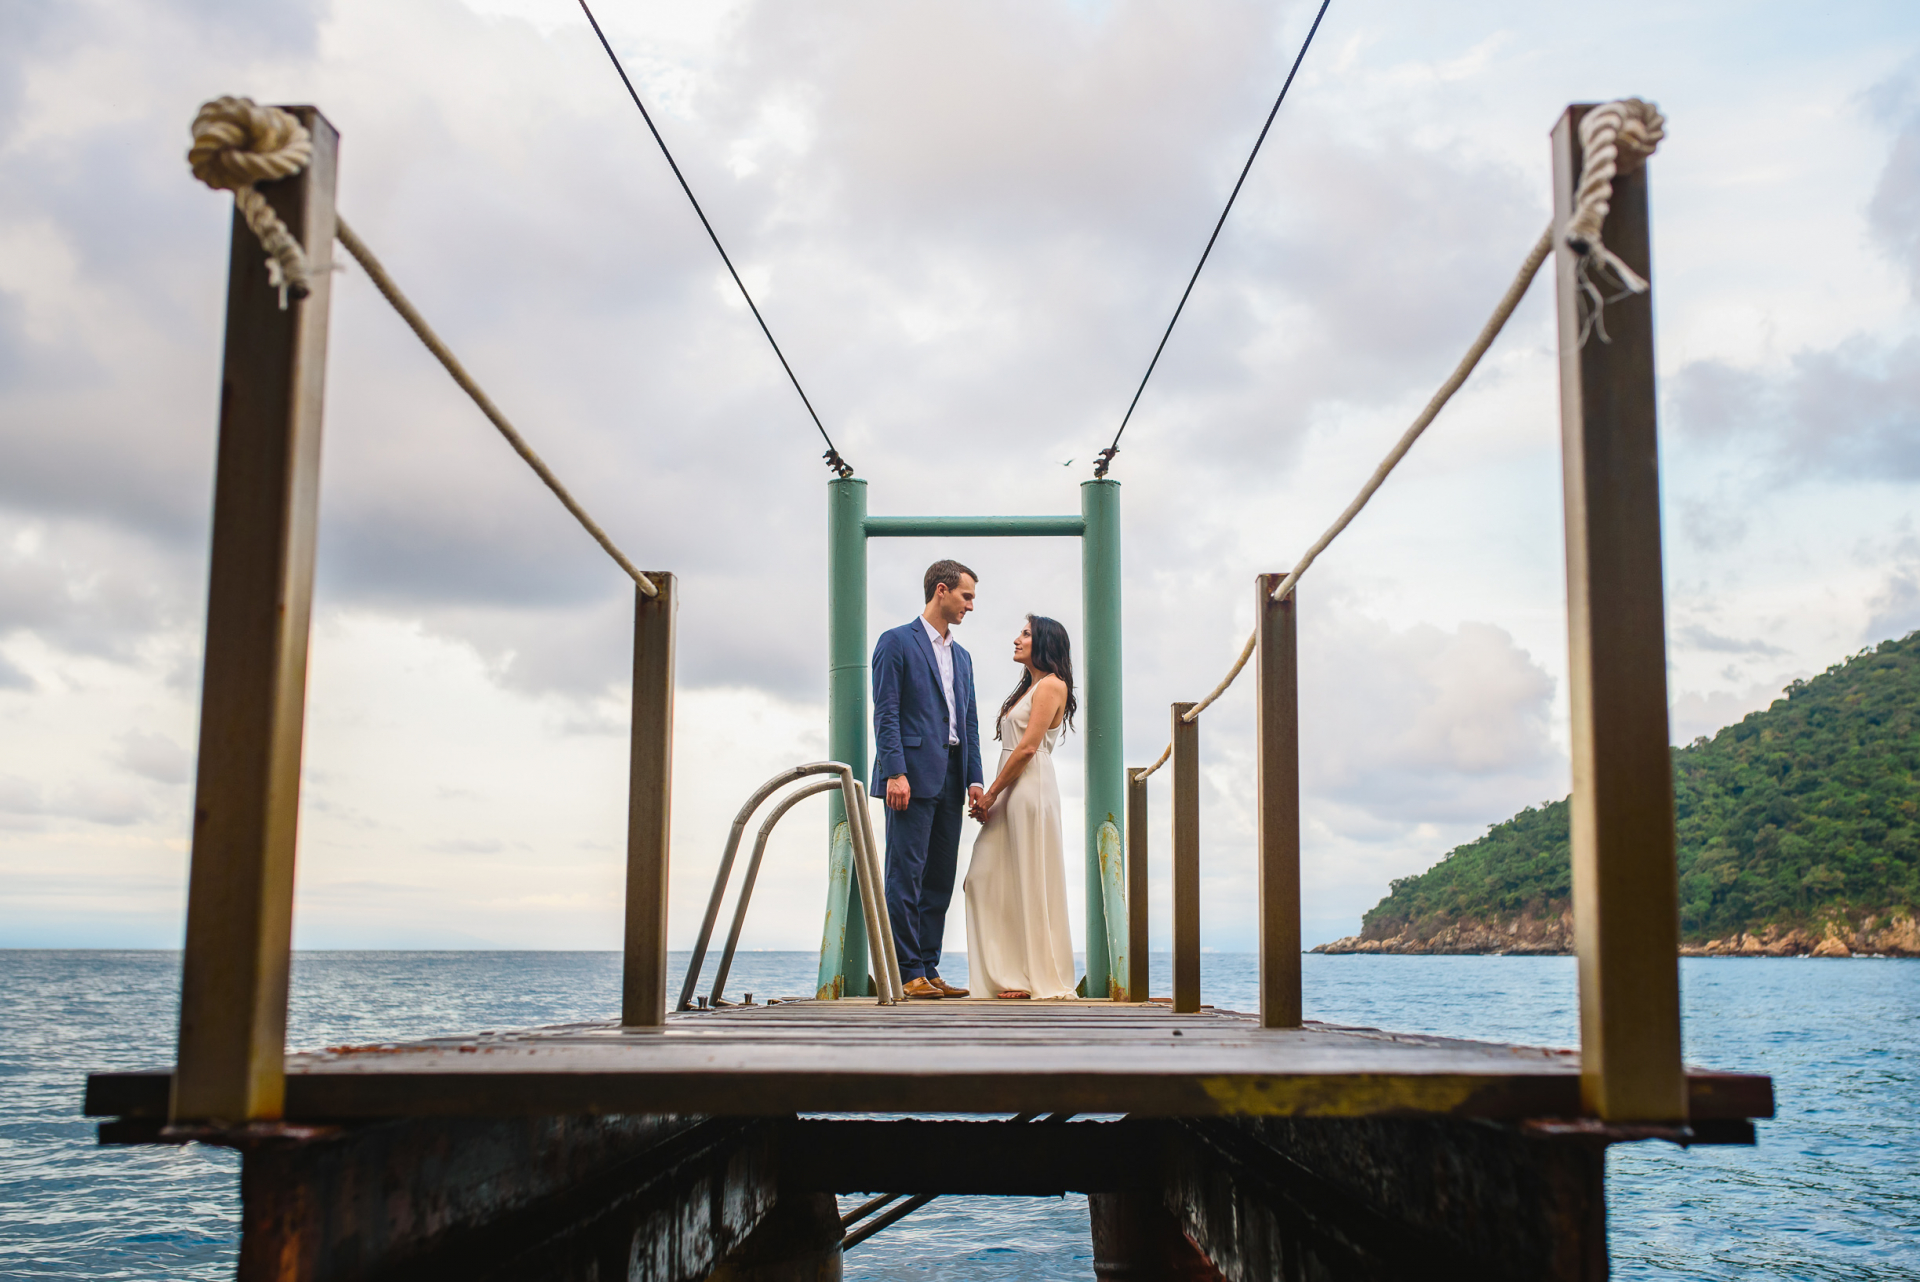 Yelapa, Mexico Elopement Wedding Portrait | The newlyweds gaze longingly into one another's eyes and hold hands as they stand on a dock floating on gleaming blue water